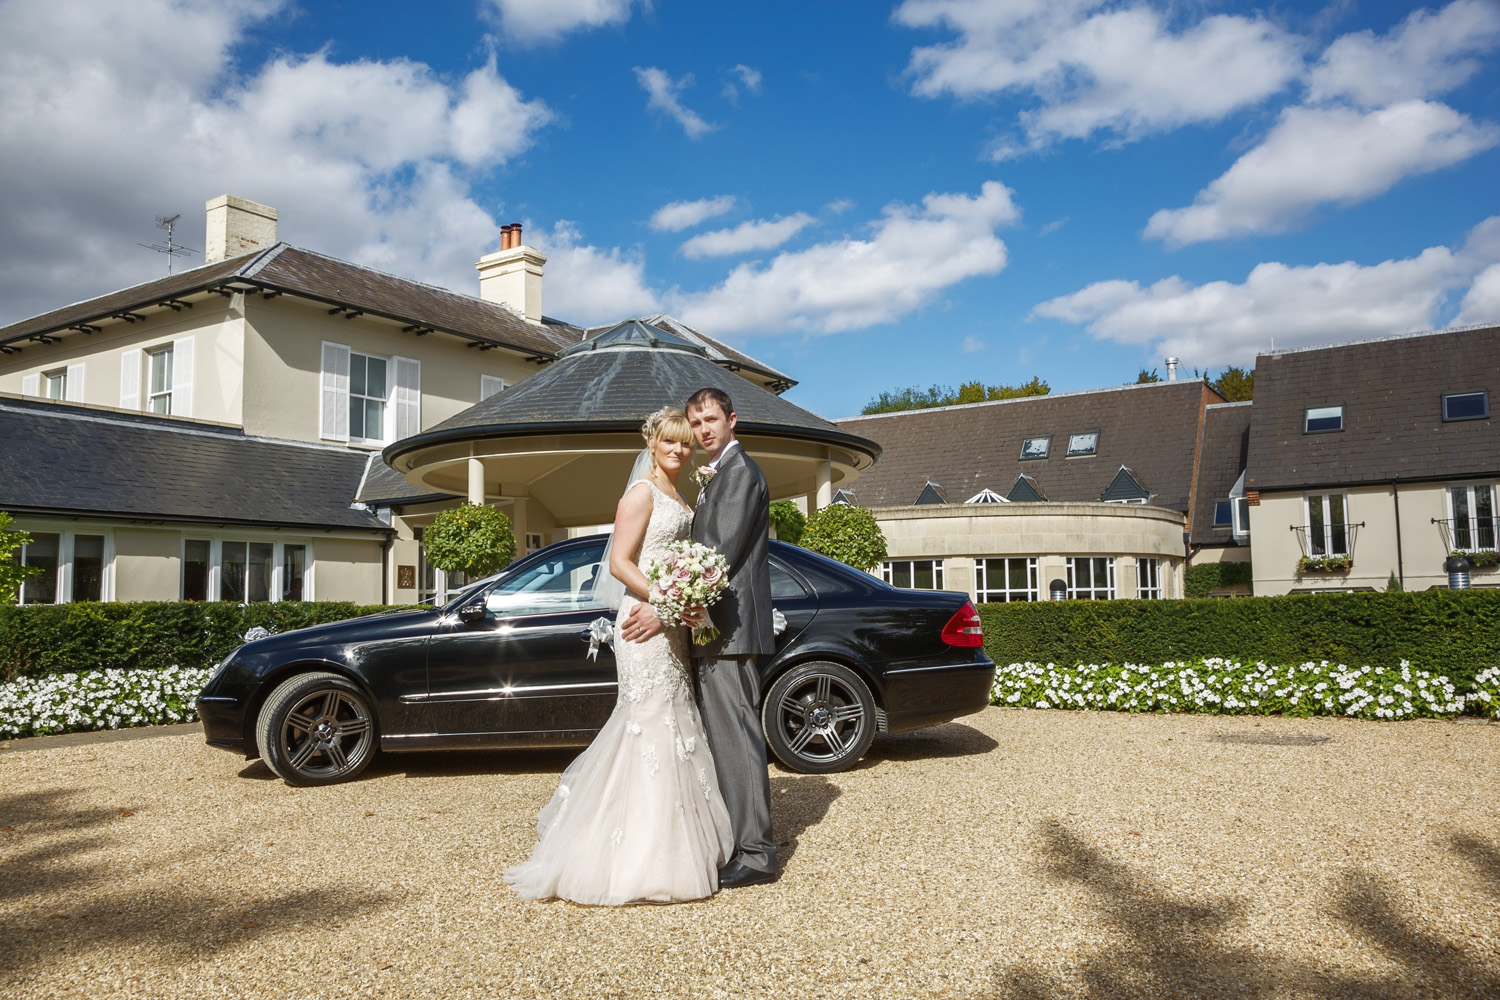 The_Vineyard_Hotel_Wedding_Photographer_Newbury_Berkshire_079.jpg